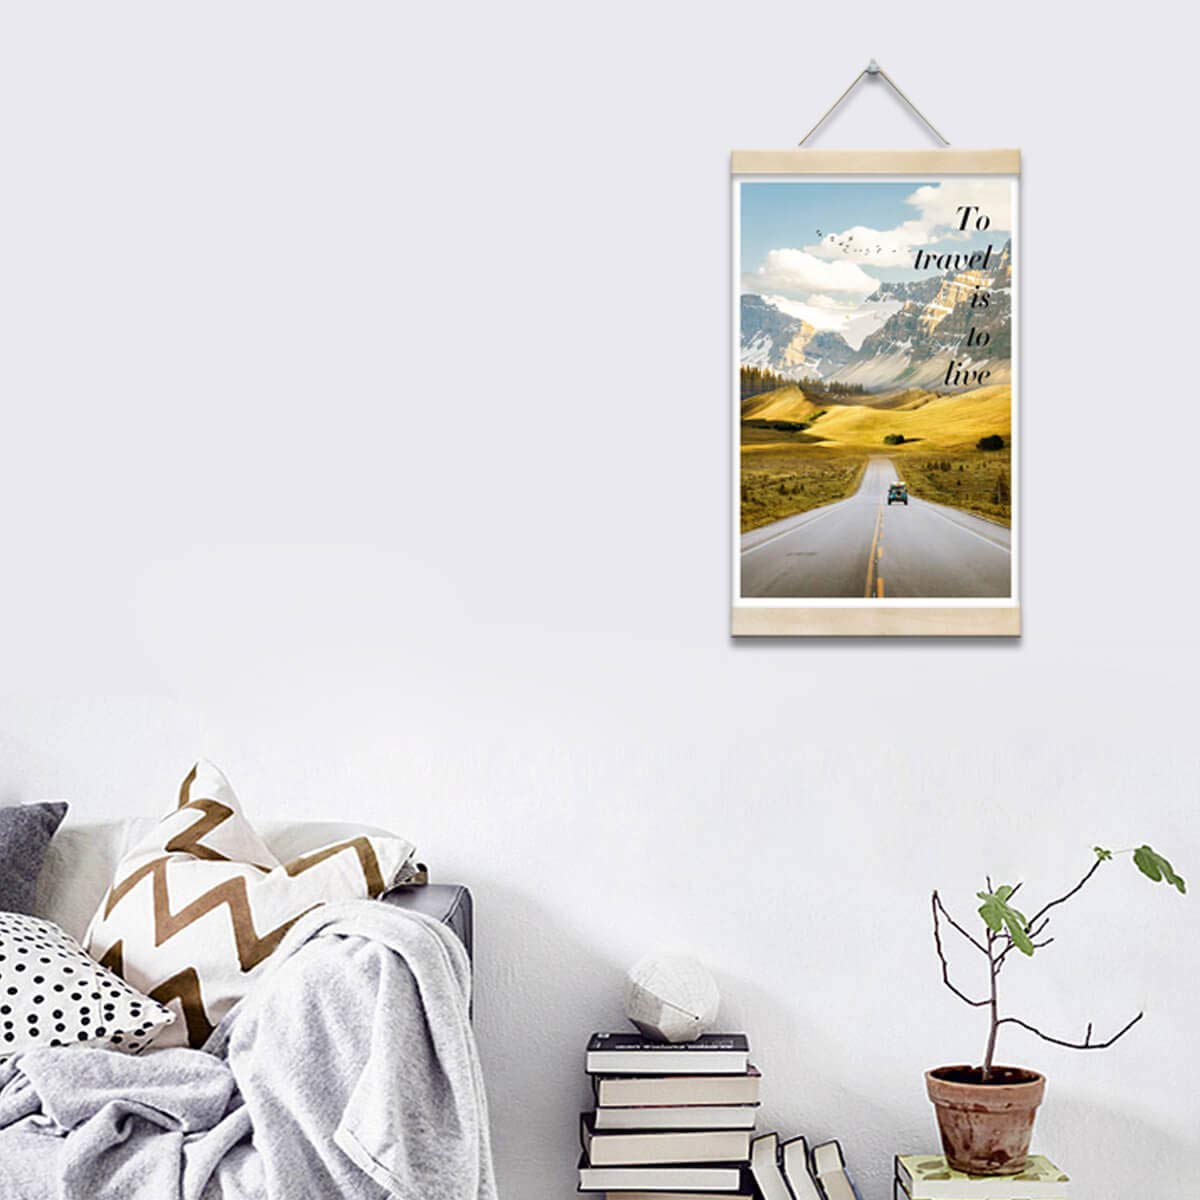 Bedroom Wall Decor Love Living Road Trip Photos Canvas Prints Travel Framed Wall Art Nature Gold Art Mountains Canvas Art Wall Pictures For Bathroom Prints Hanging Poster With Wood Frames 16x24inch Buy